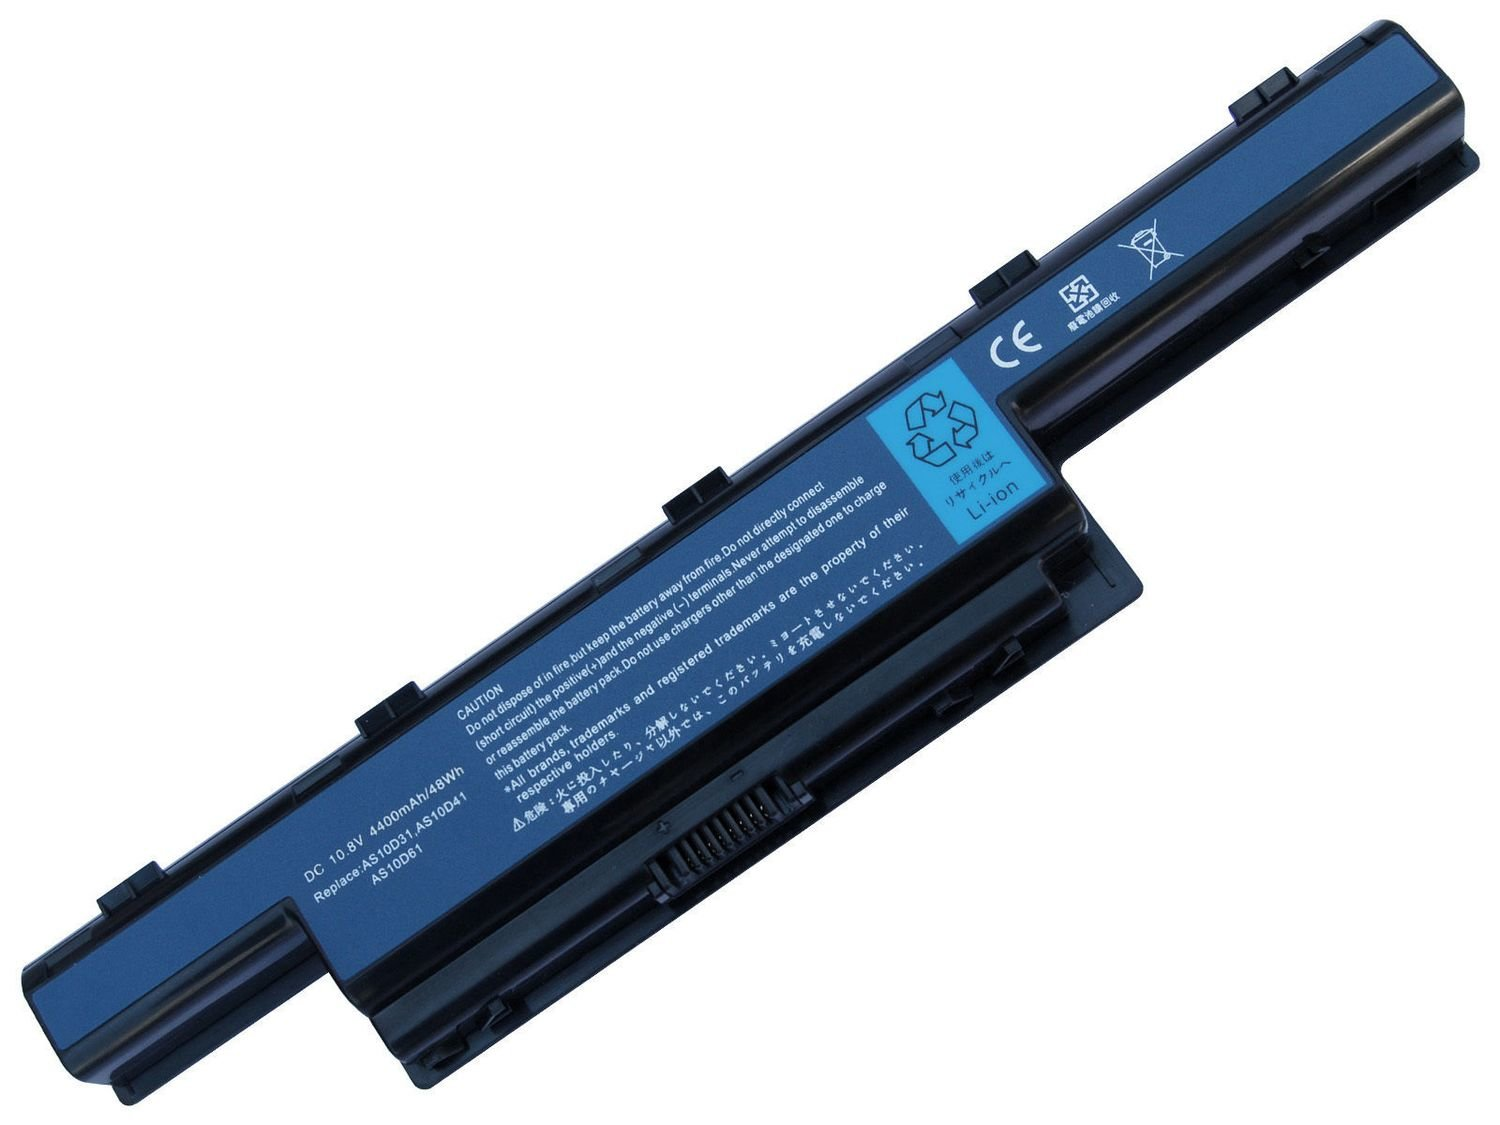 Acer aspire 5333 5336 5551G 5552 5552G series laptop battery